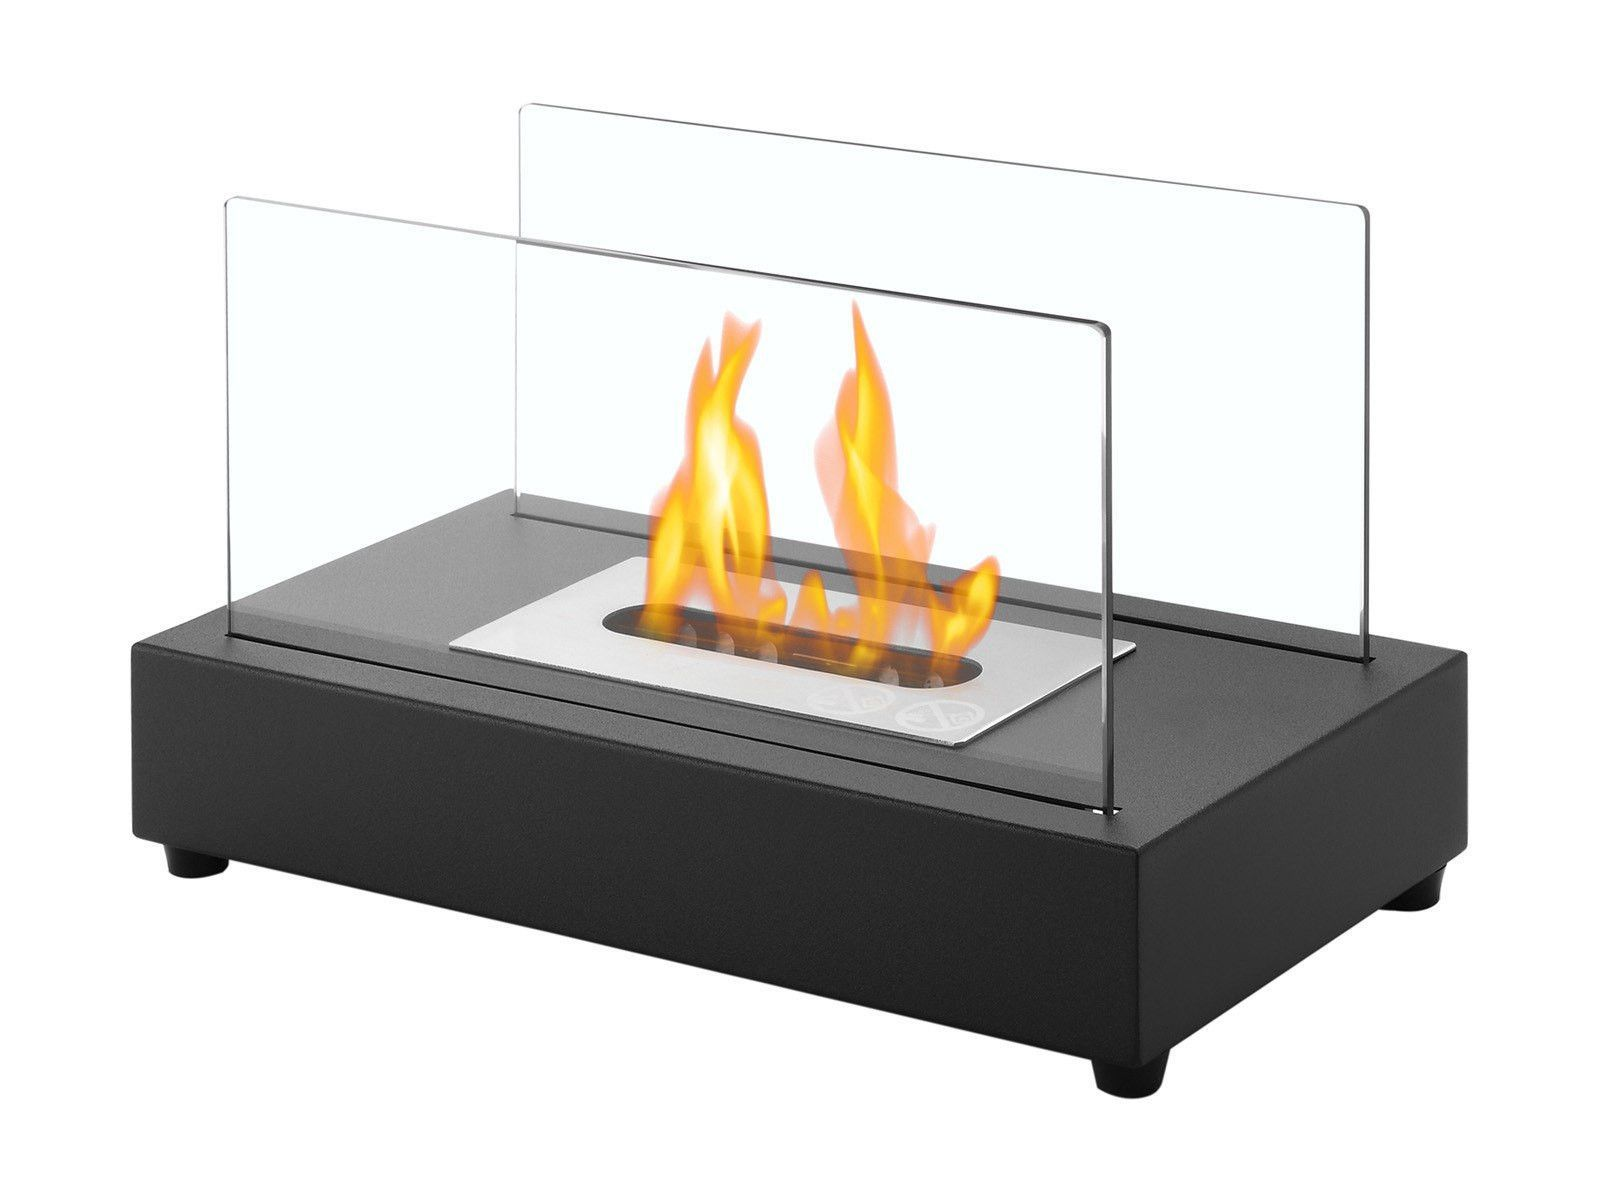 Ignis Tower Stainless Steel Table Top Ethanol Fireplace